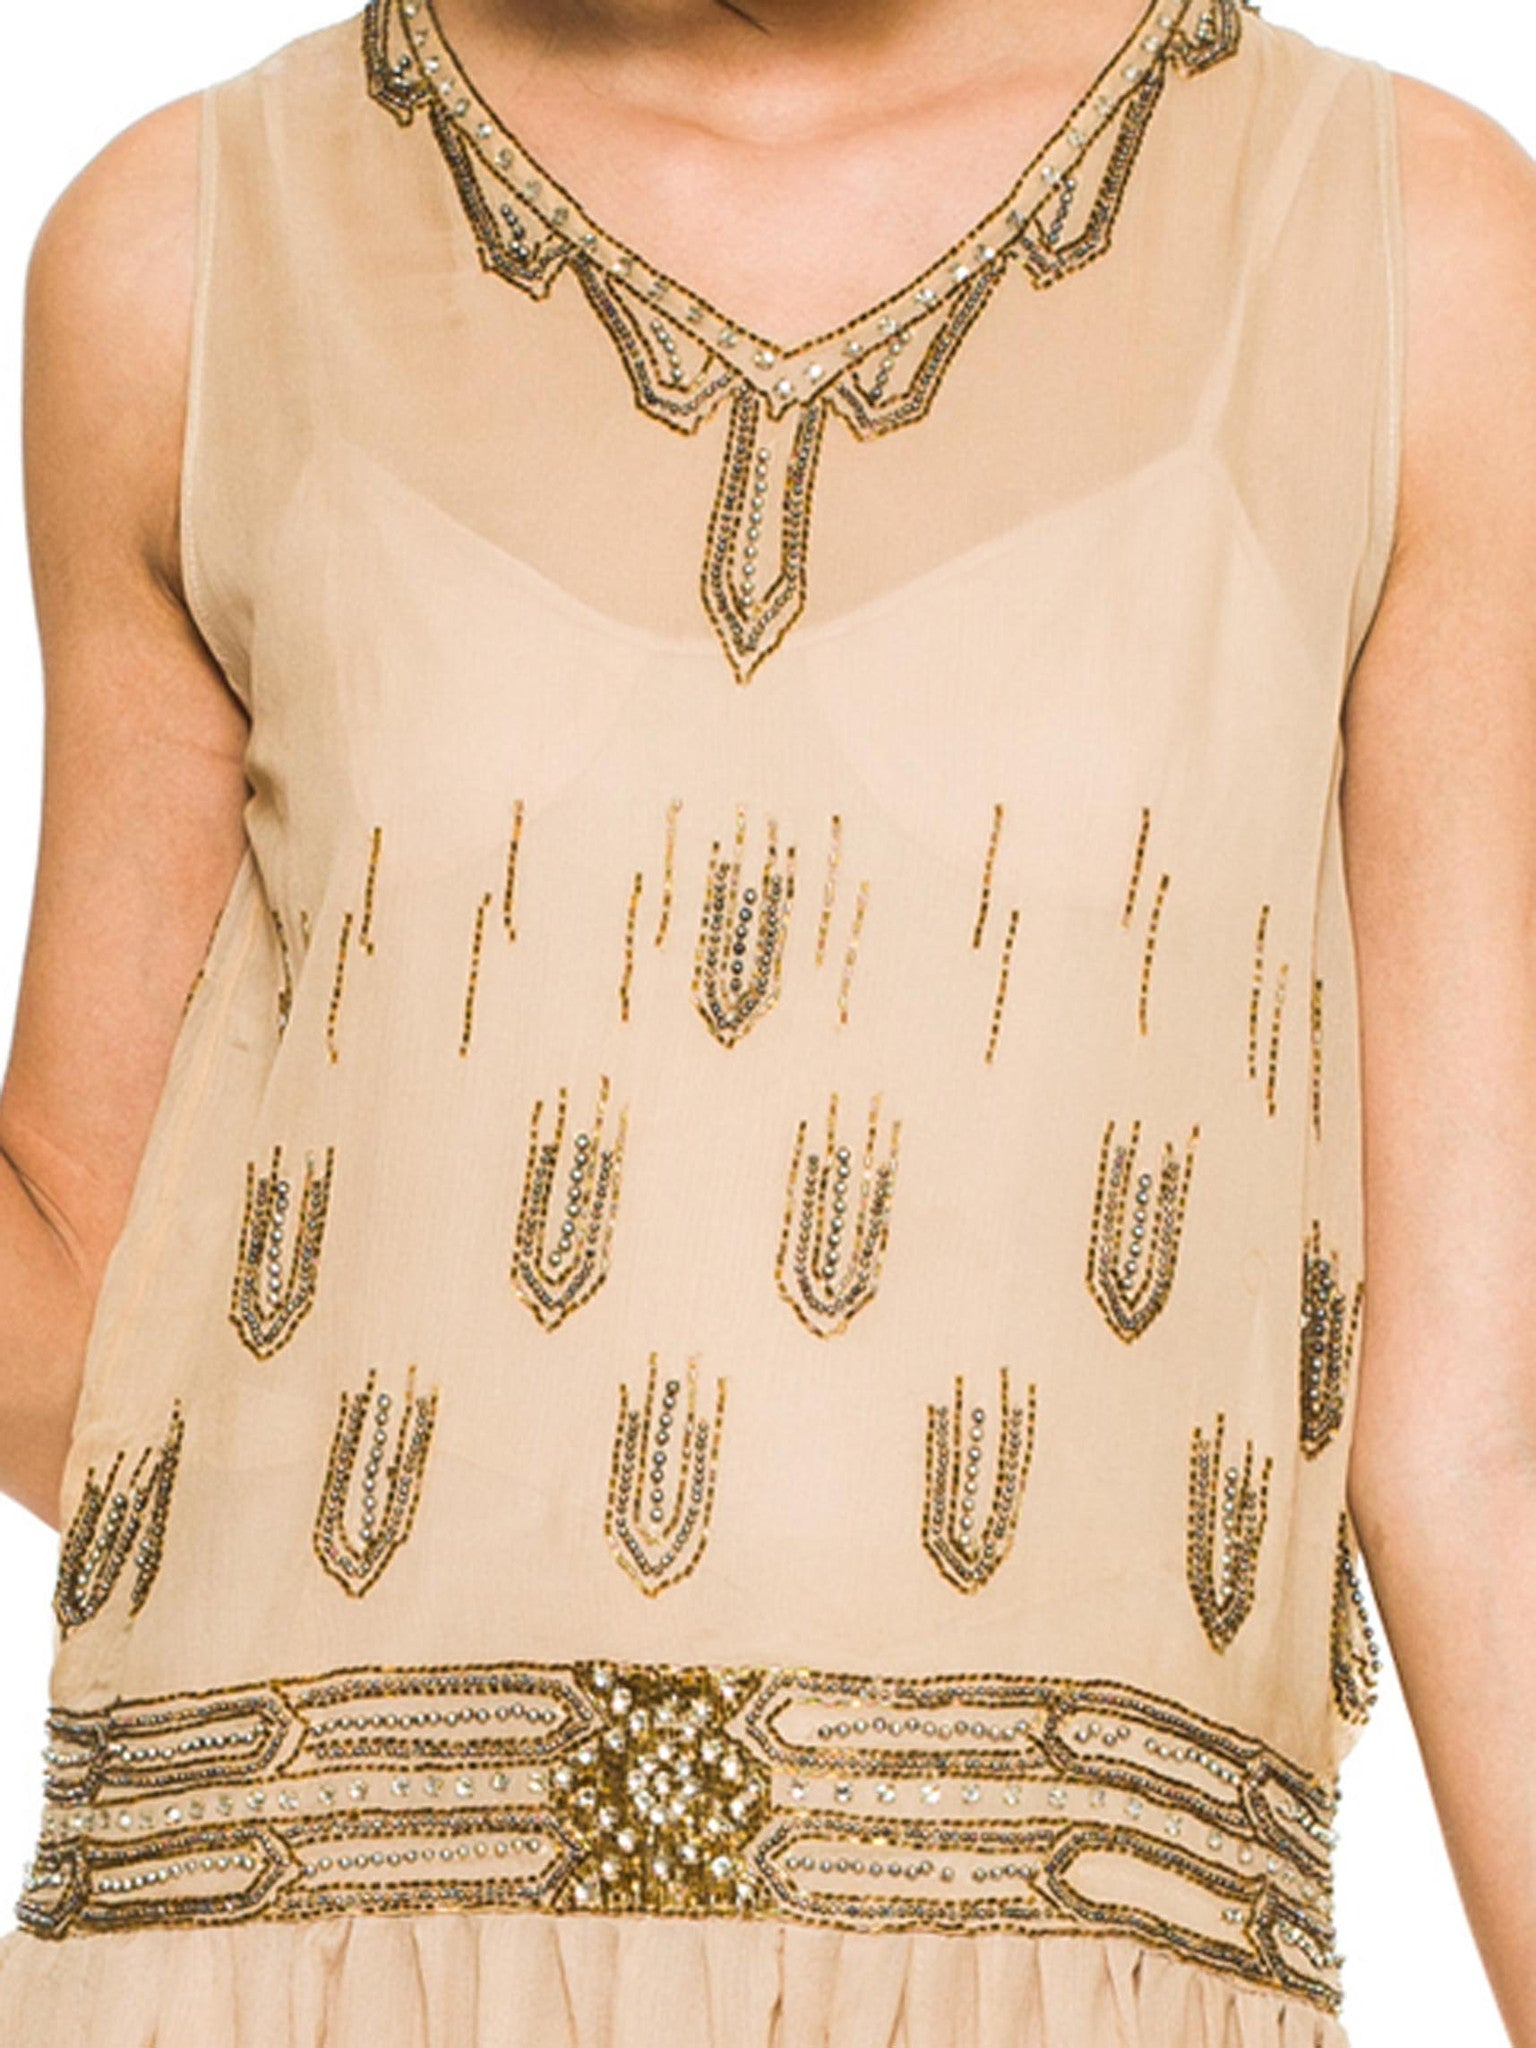 1920S Champagne Silk Chiffon Art Deco Gold Beaded & Crystalized Flapper Dress With Petal Hem